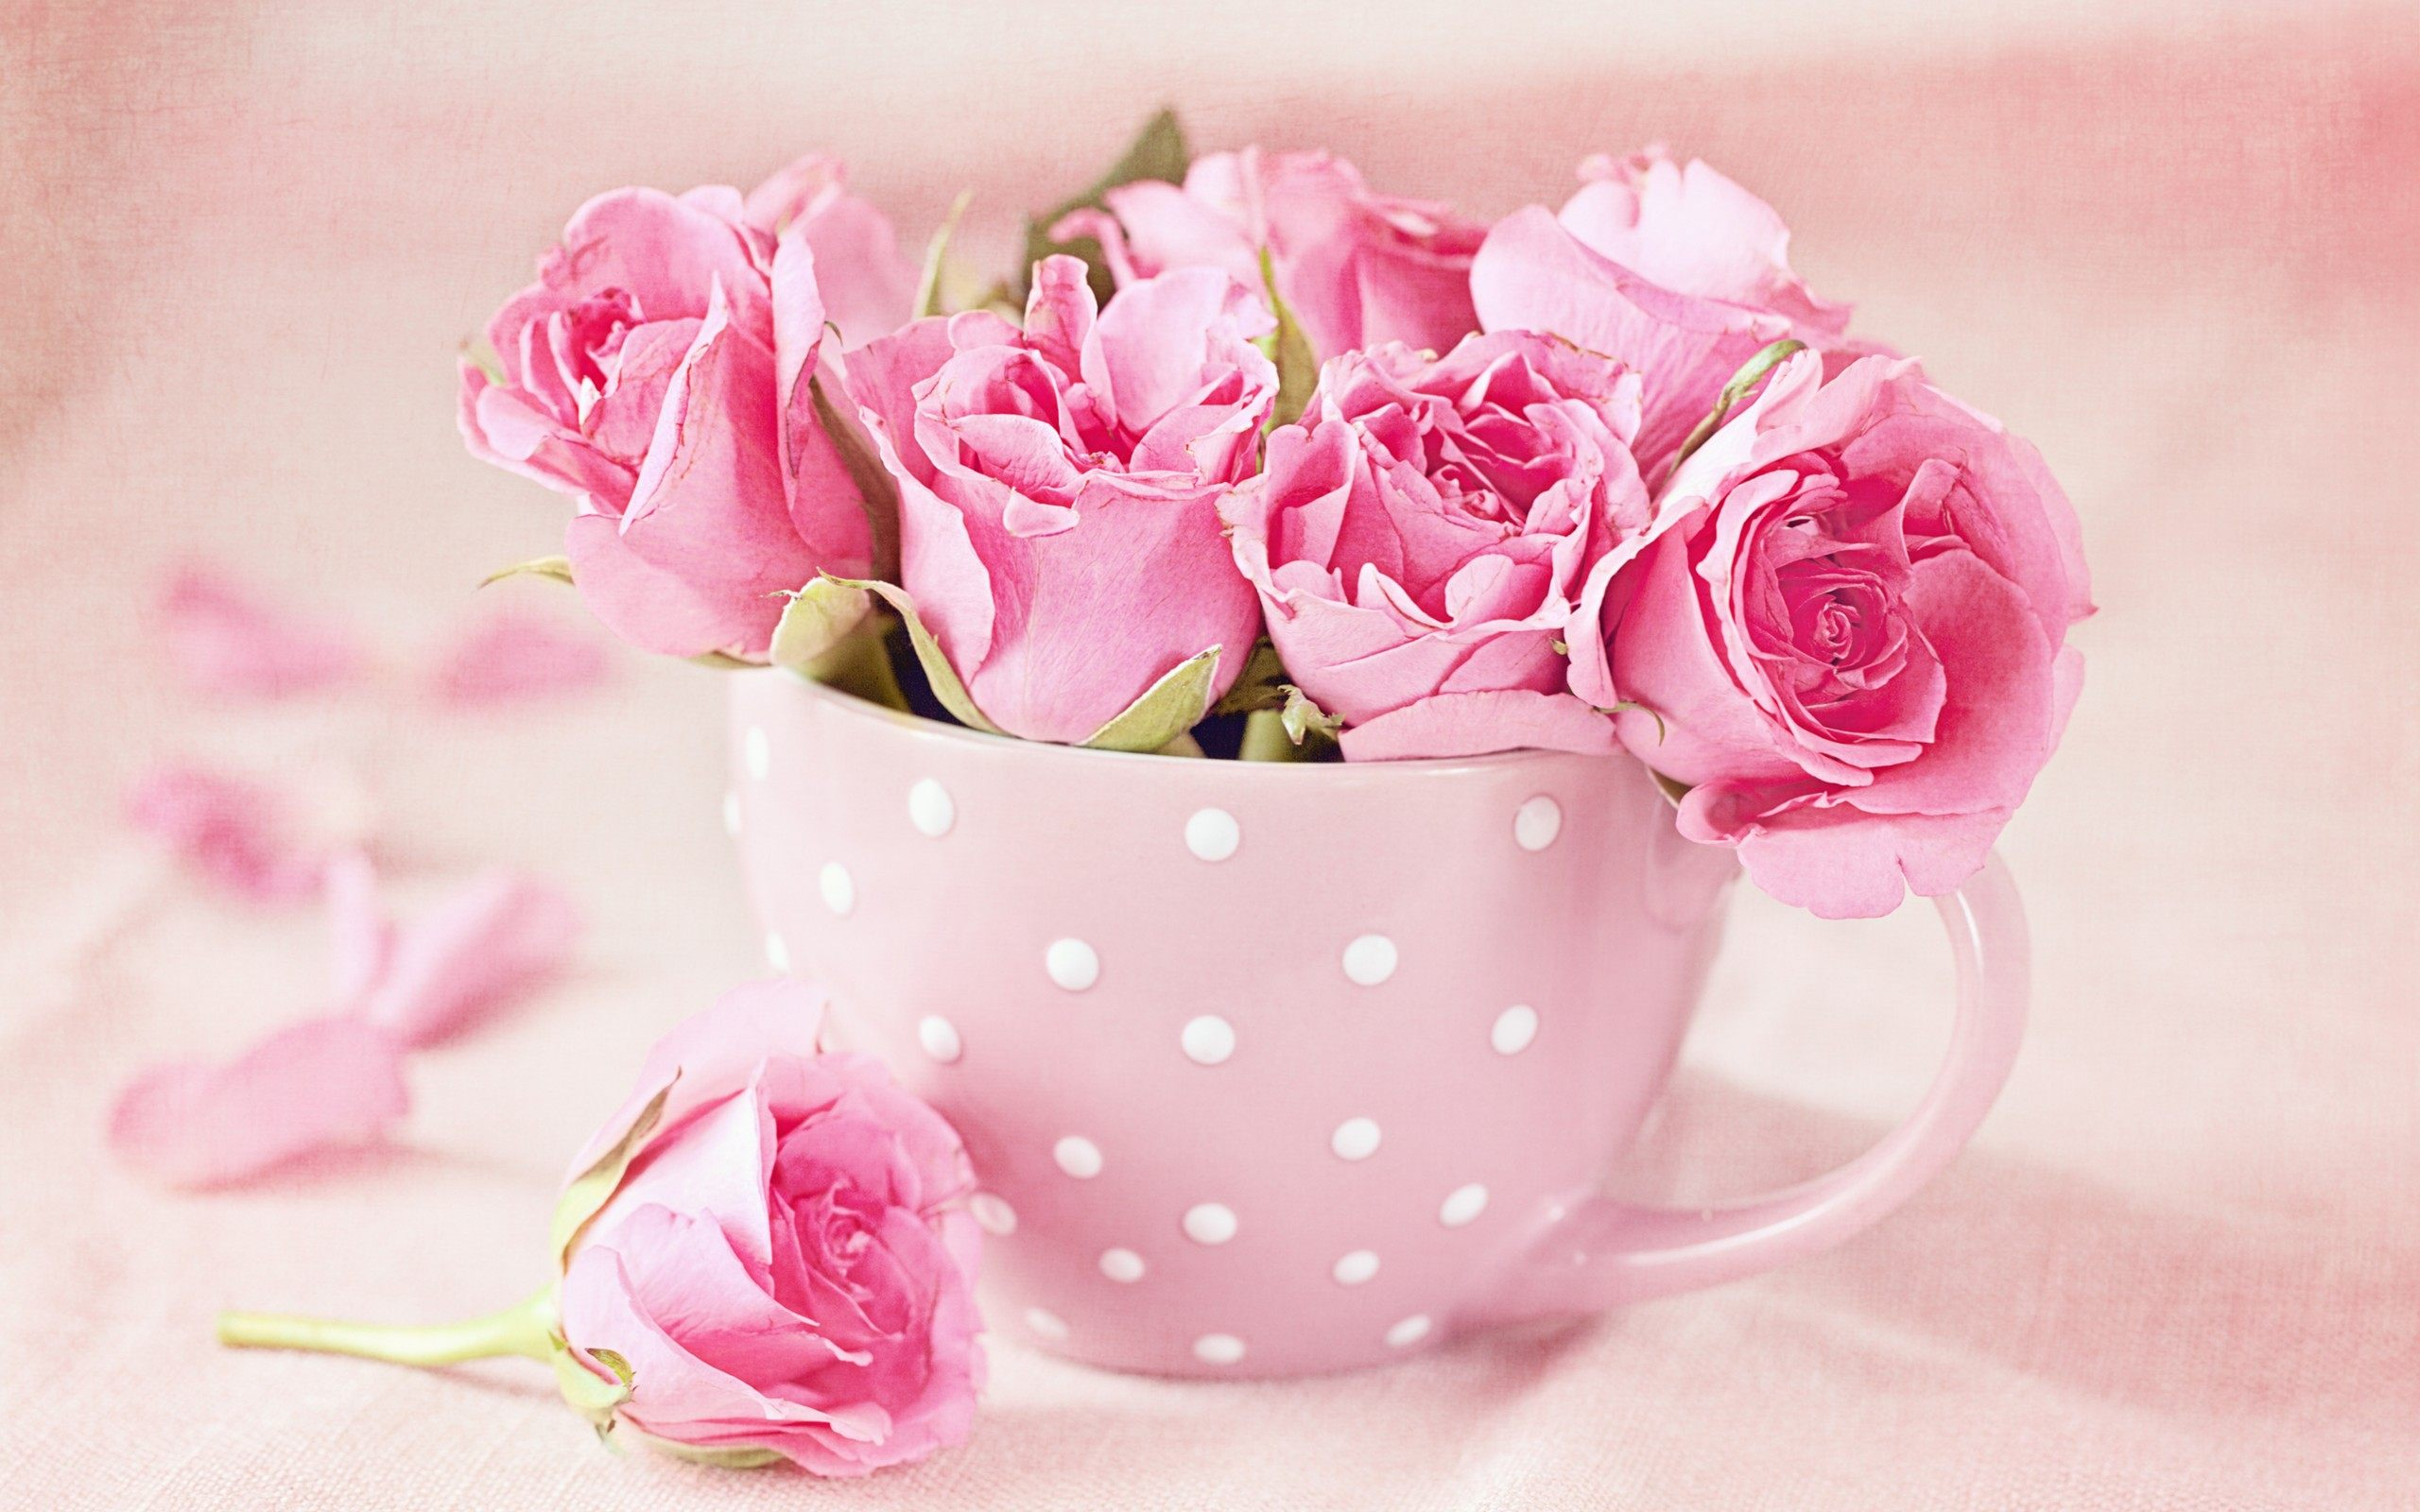 Pink Roses Images Group with 42 items